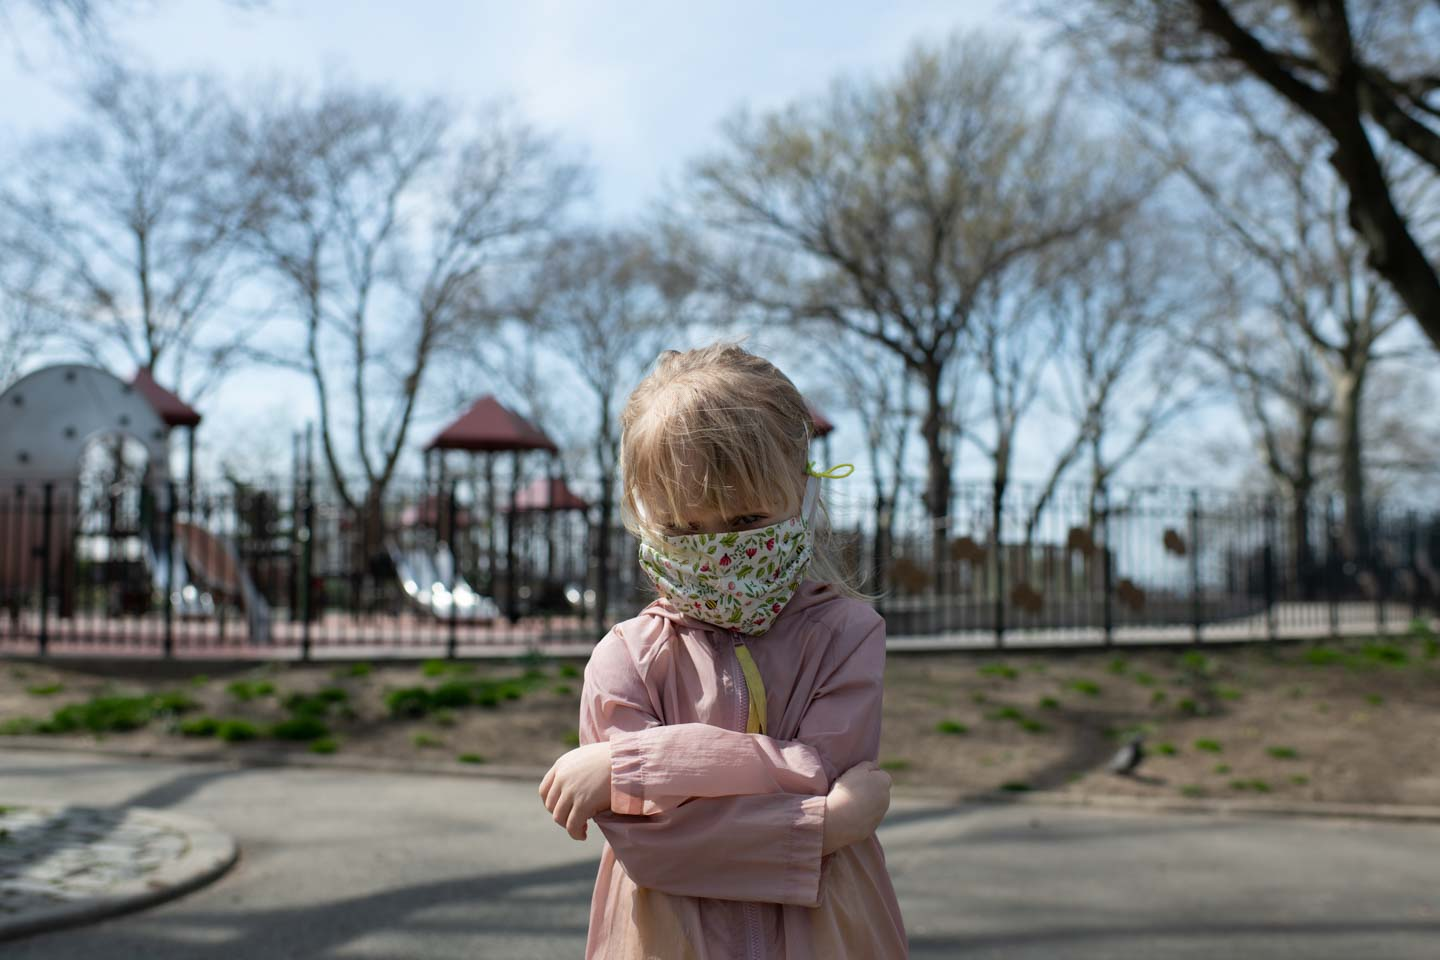 A little girl with a face mask on crosses her arms in front of gated playground